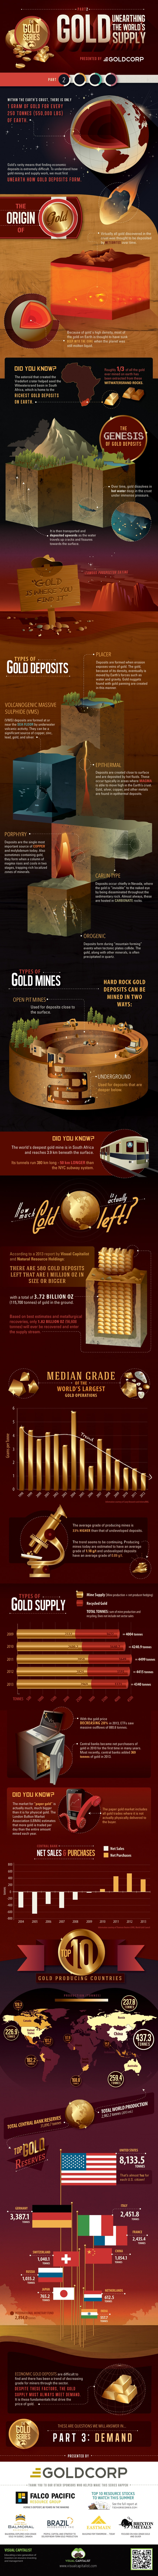 gold-series-unearthing-supply-infographic1